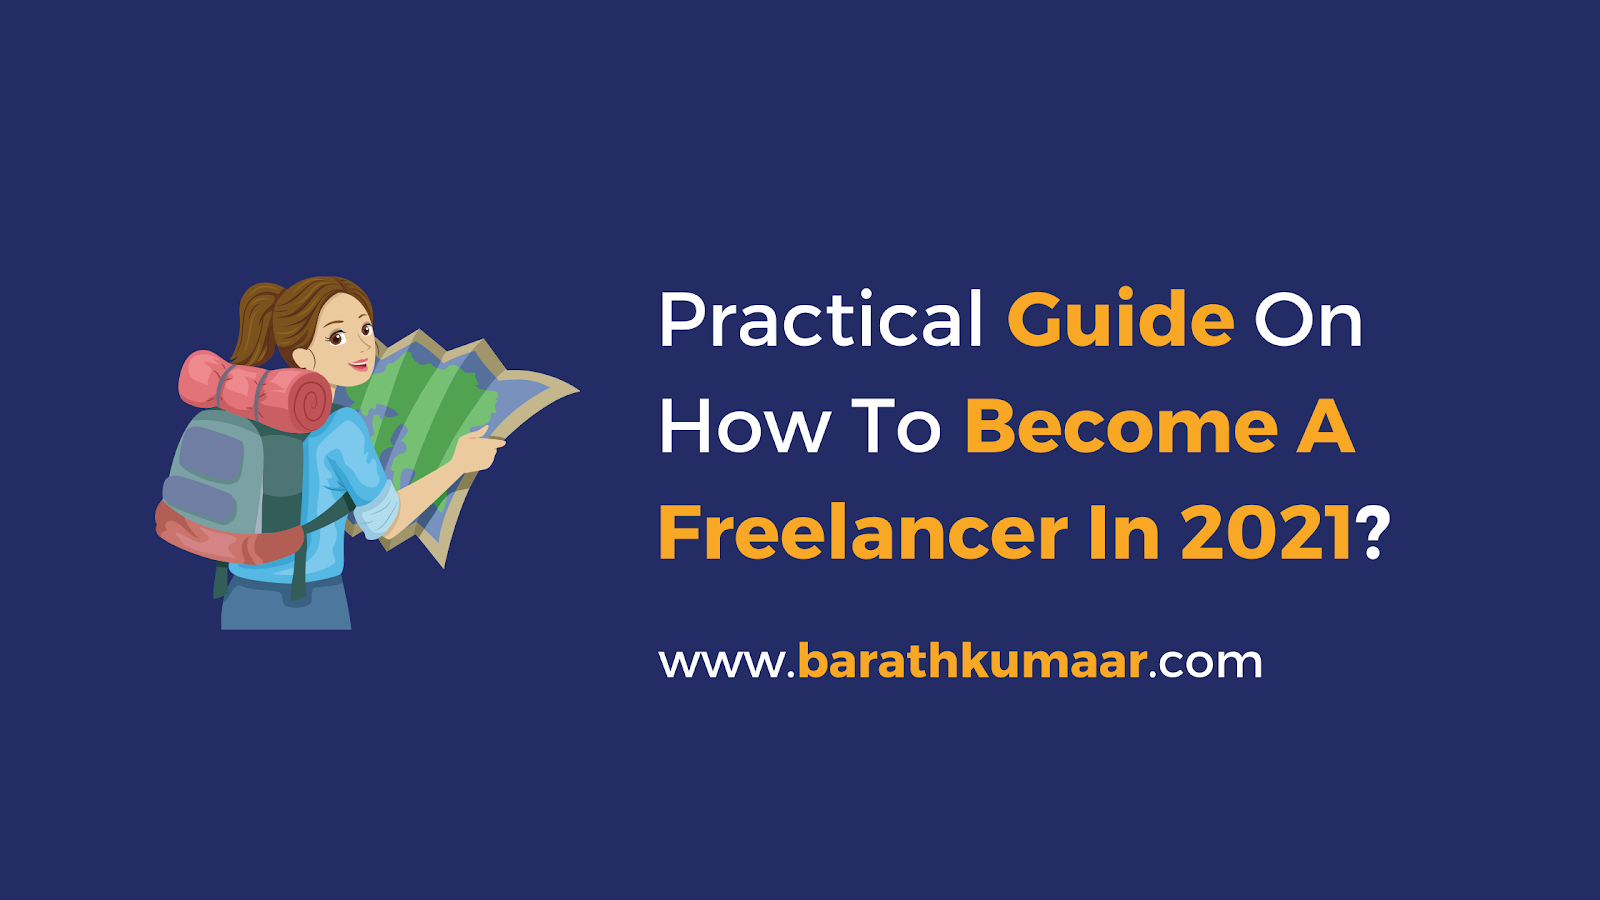 Practical Guide on How to Become a Freelancer in 2021?